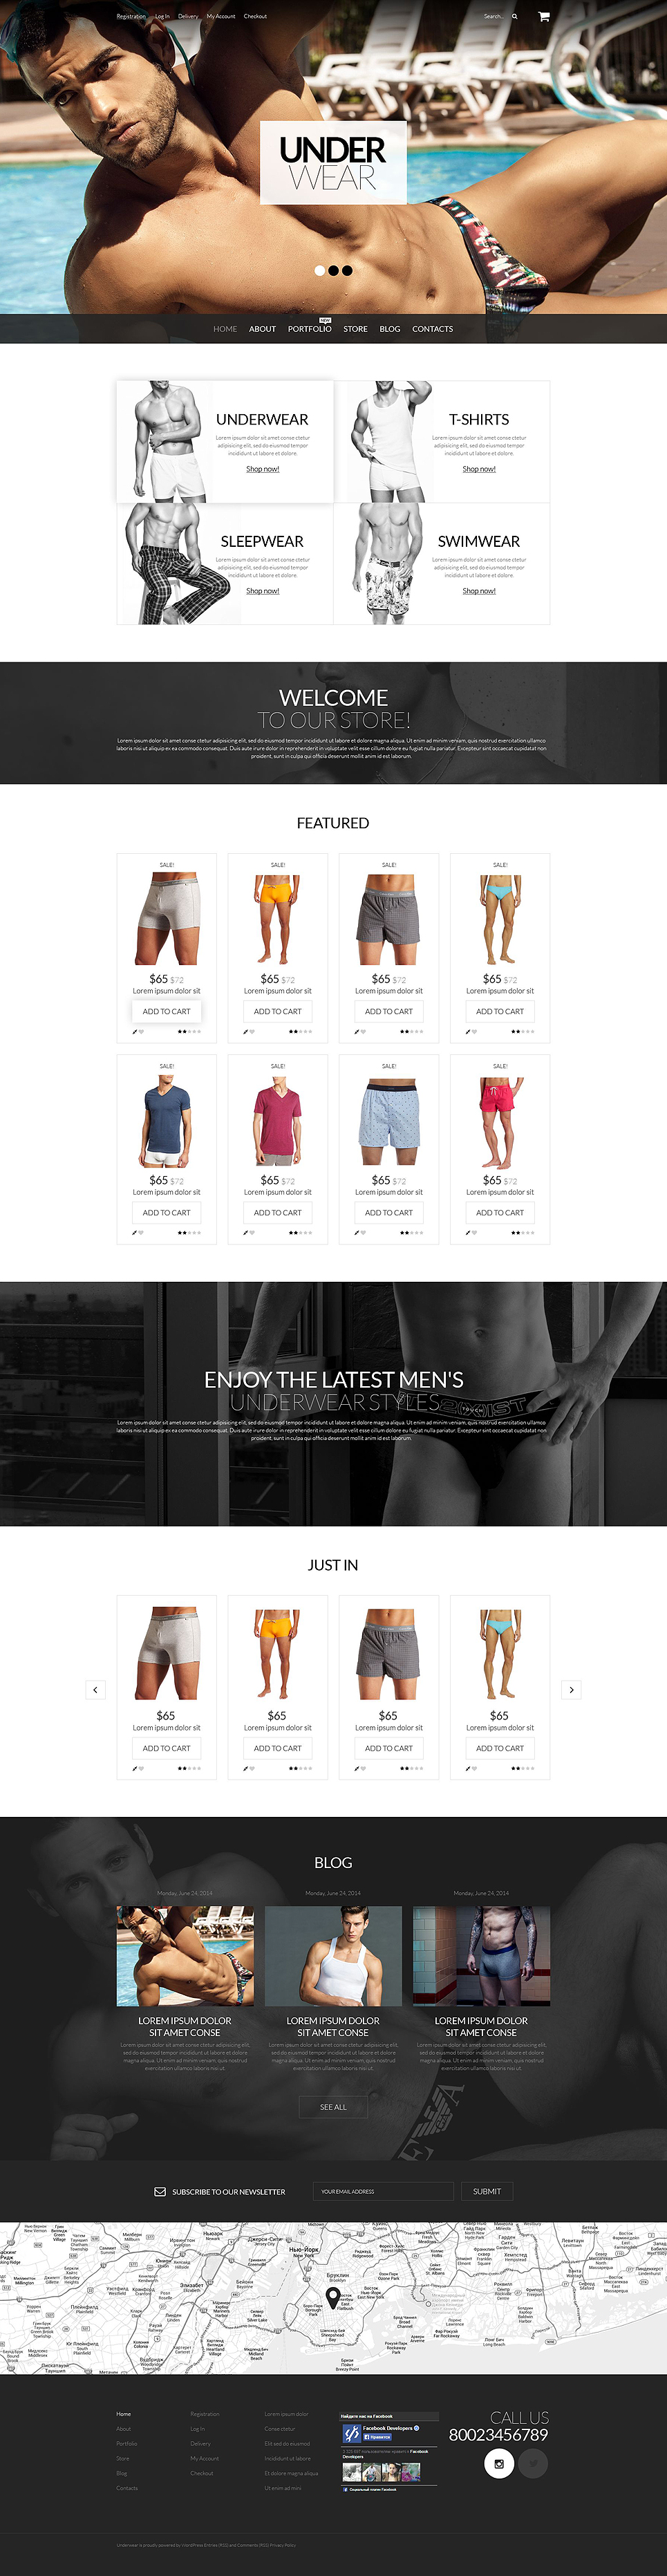 Underwear for Men